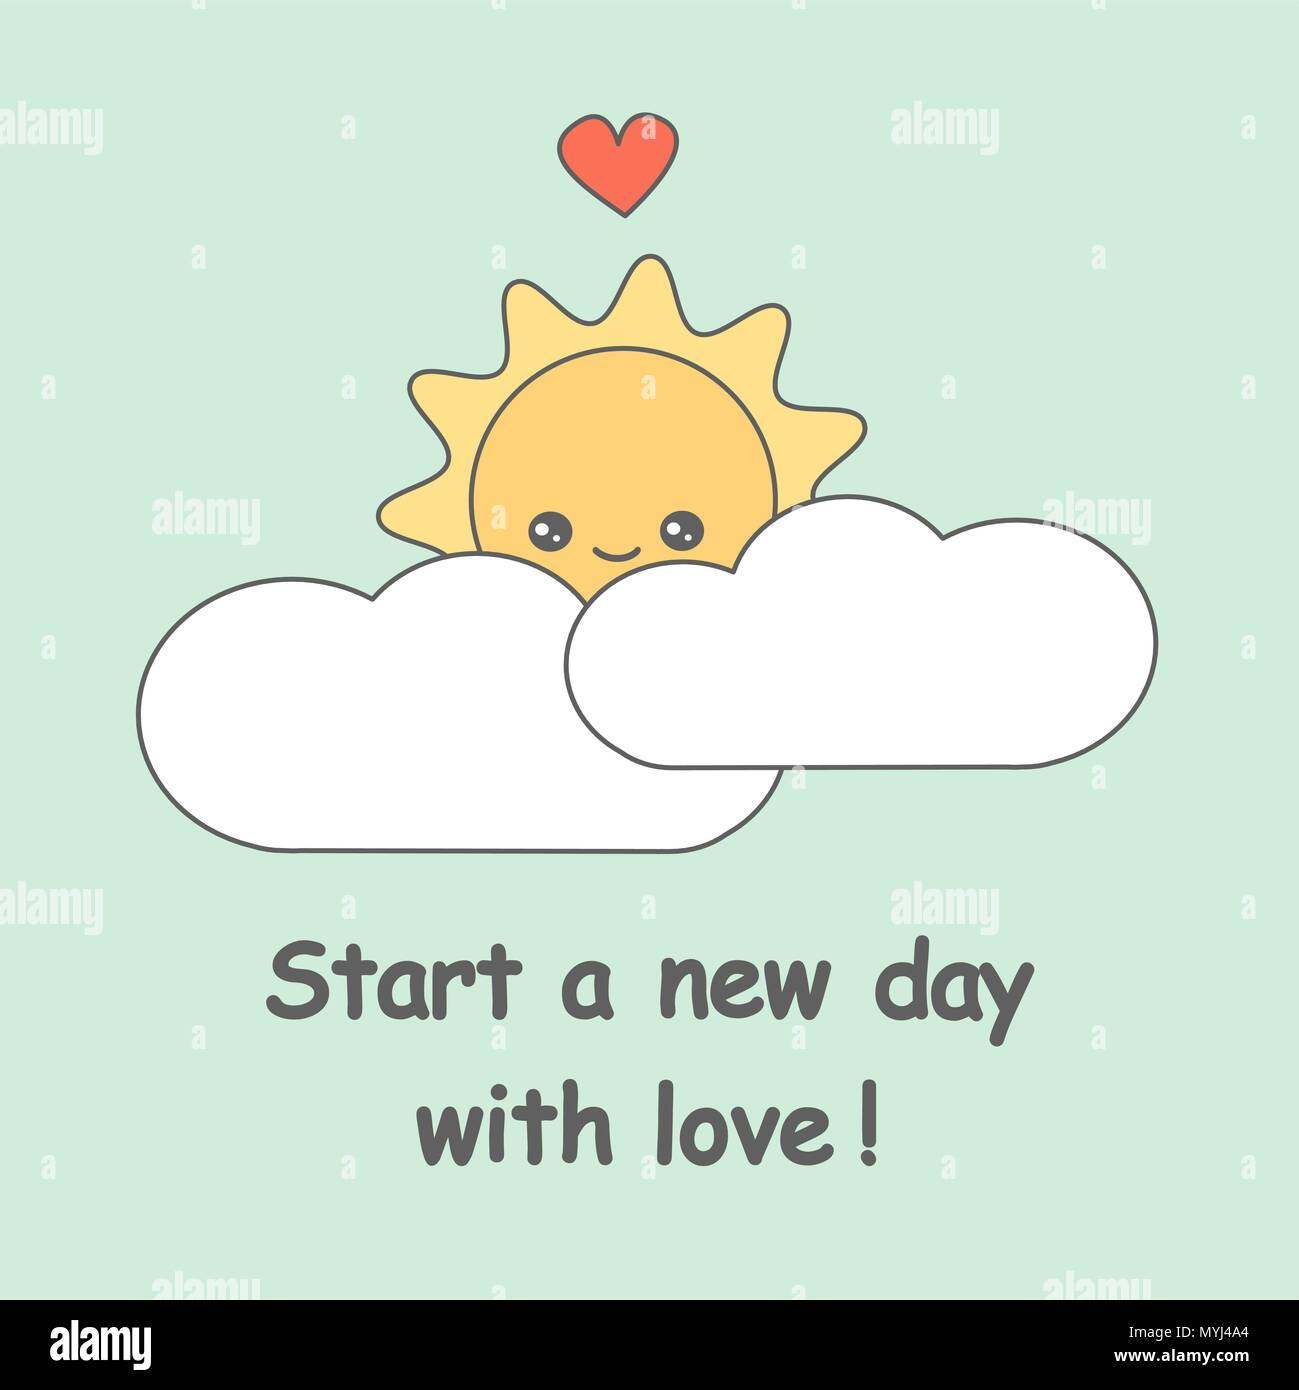 Start A New Day With Love Quote Vector Illustration With Cute